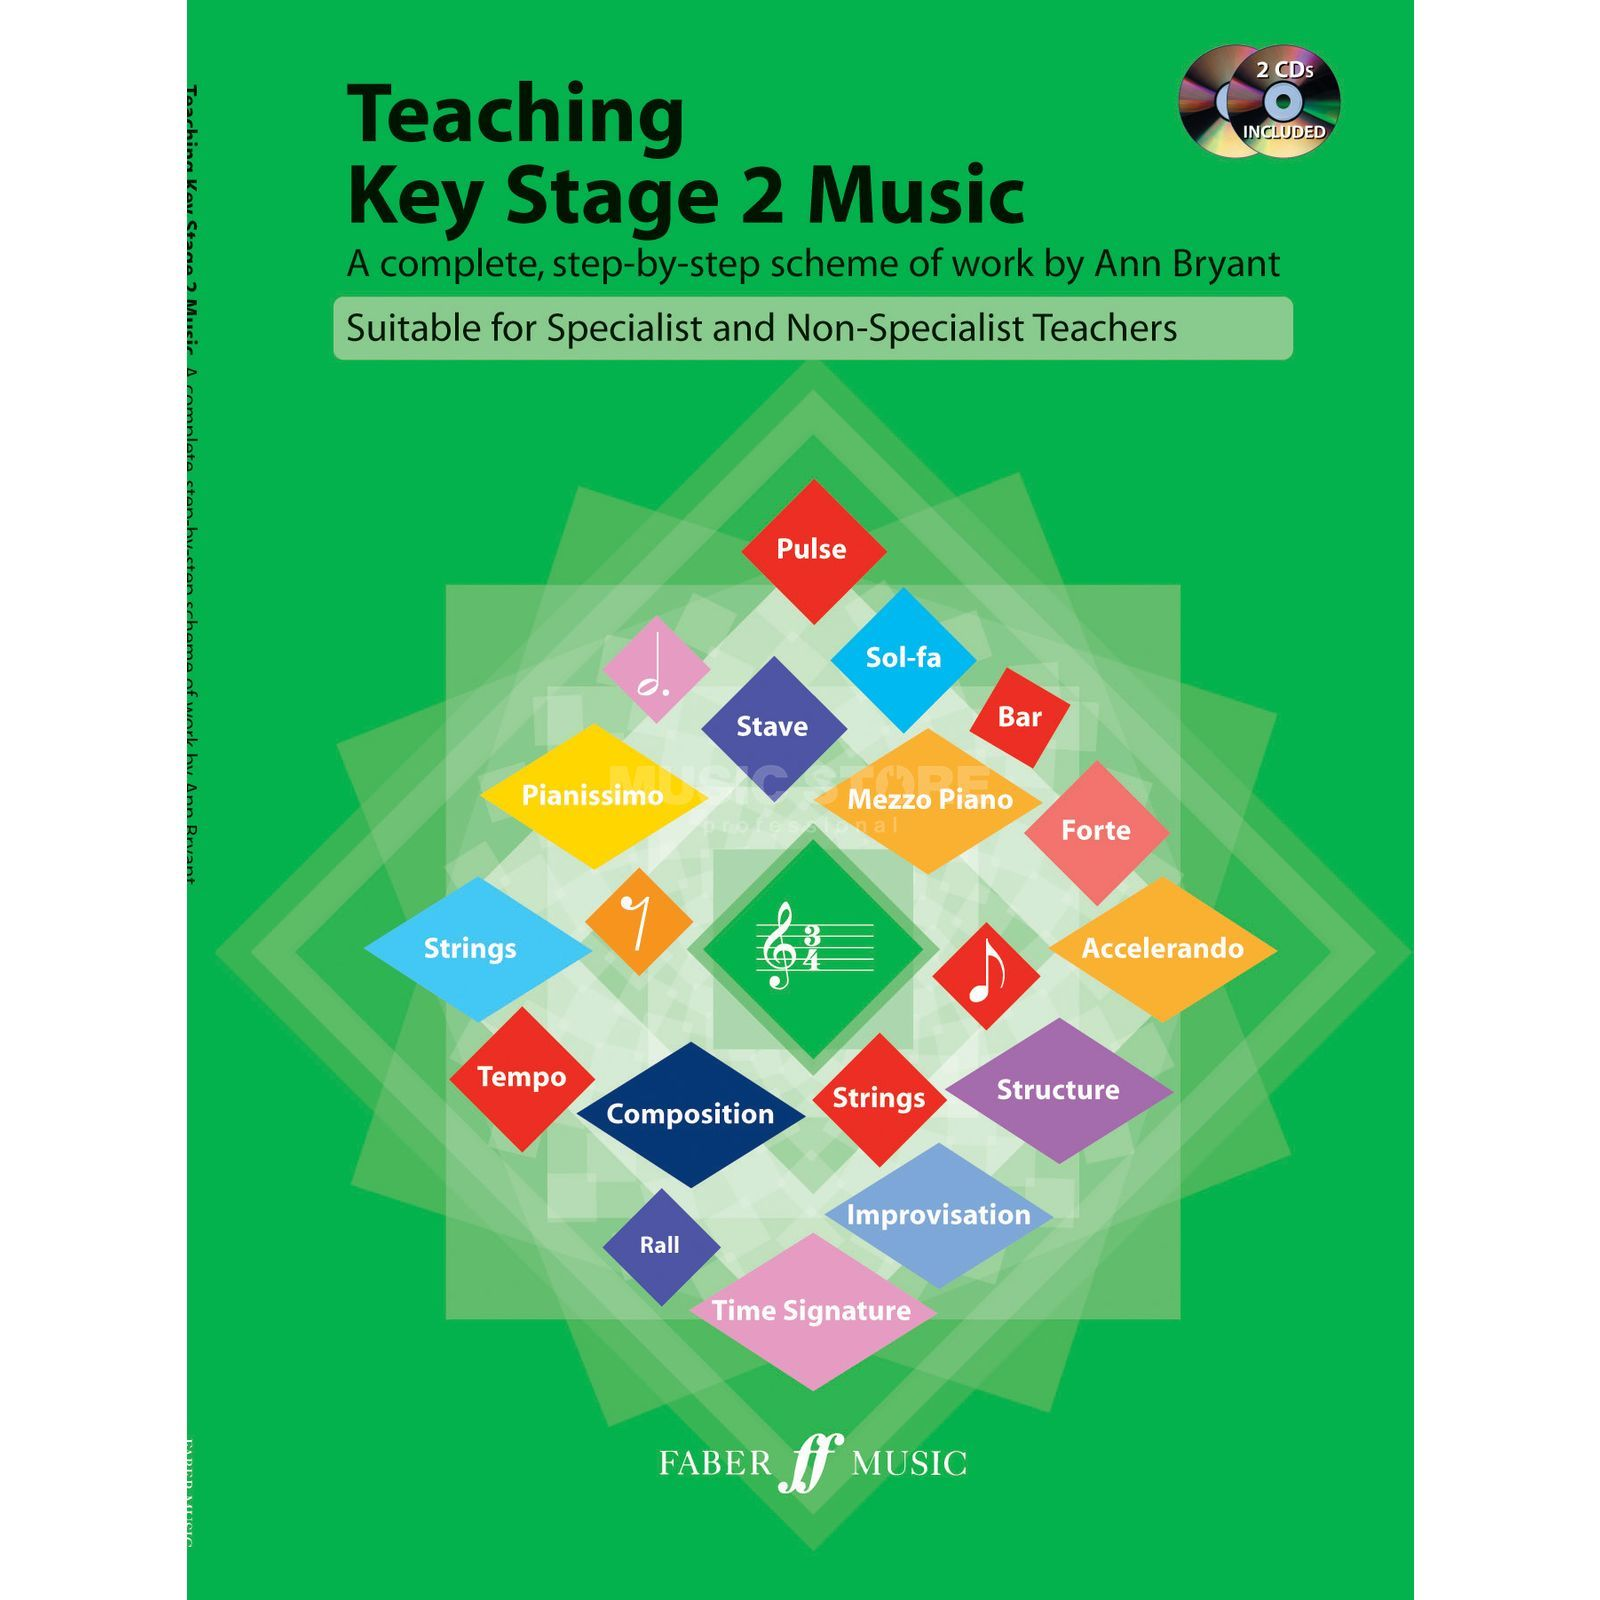 Faber Music Teaching Key Stage 2  Music CD, Ann Bryant Produktbild